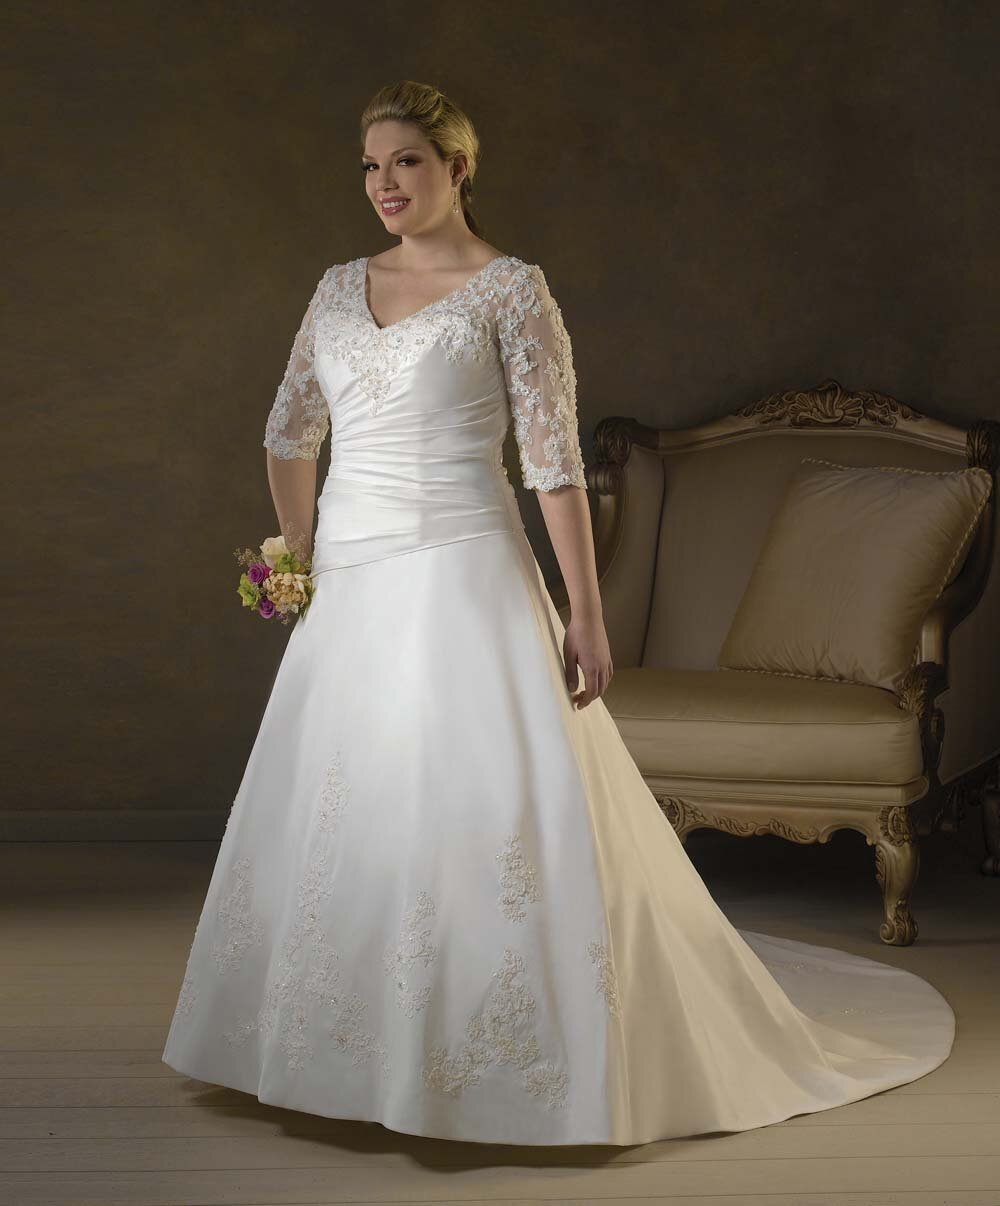 Plus size retro wedding dresses Photo - 1